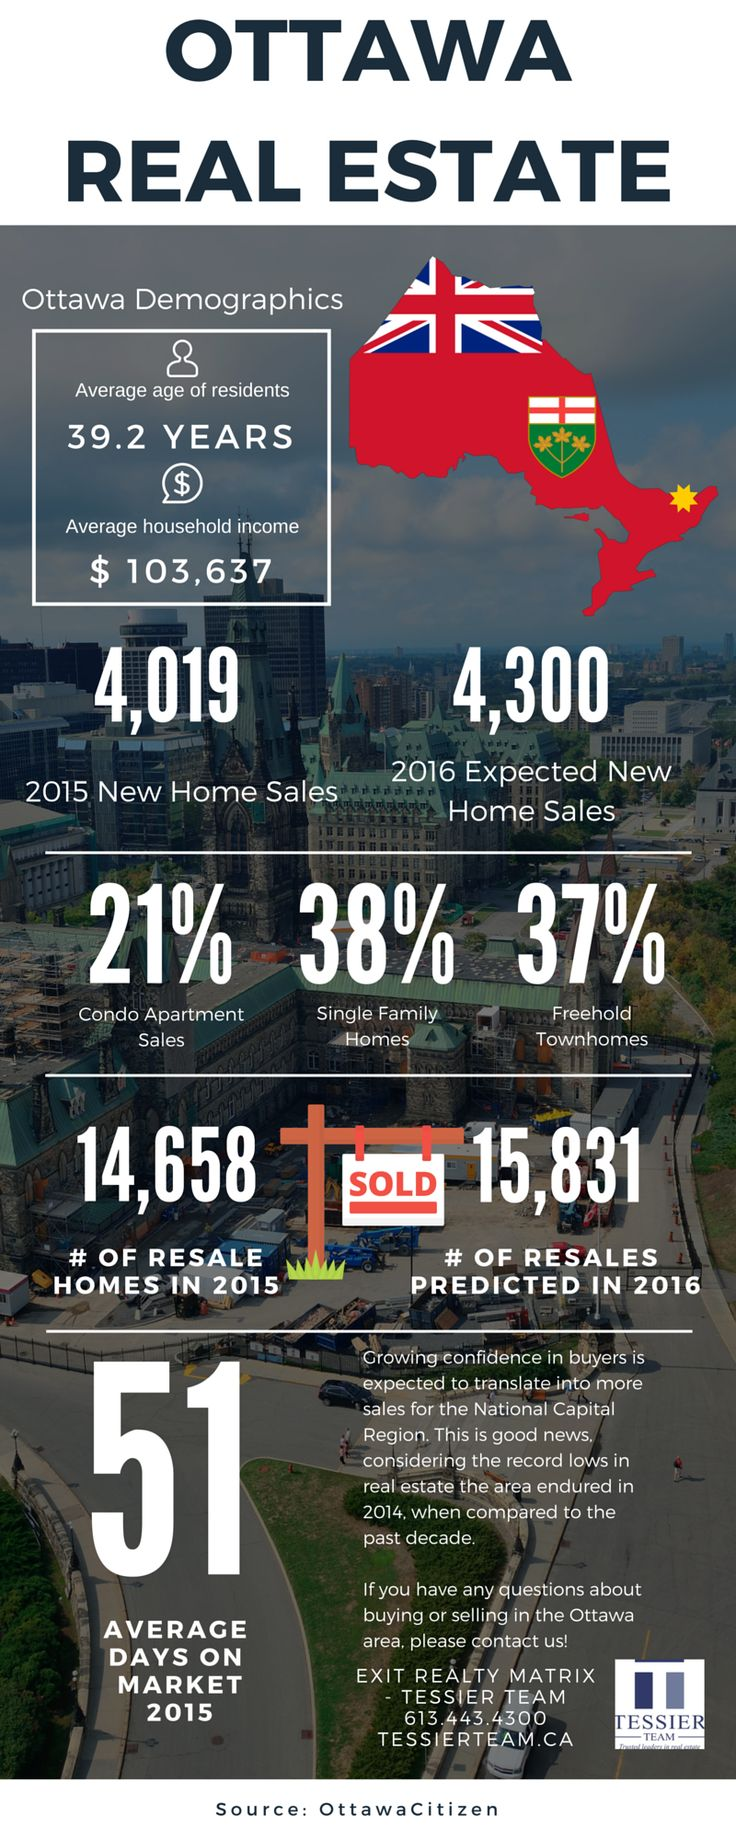 The #Ottawa #RealEstate market is expecting an increase in sales in 2016. That's great news for the Nation's Capital. Here are some #stats to take a look at. If you have more questions, feel free to contact us at tessierteam.ca ! Find out what your home is worth, quickly and easily with our new app! www.sellinginottawa.com